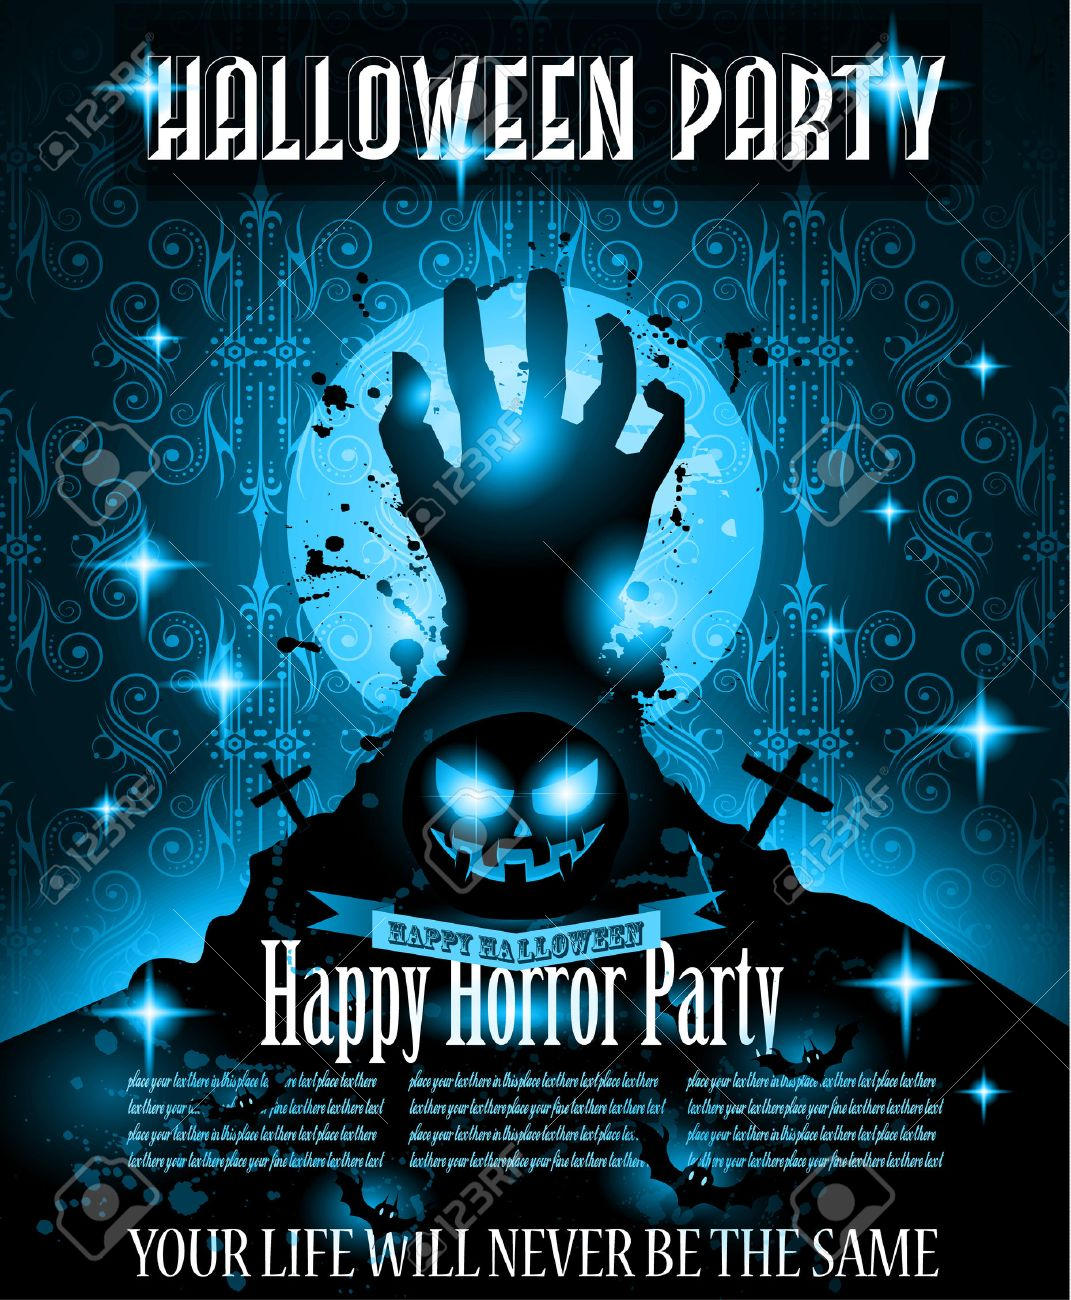 halloween images stock pictures royalty halloween photos halloween halloween night event flyer party template space for text ideal for horror